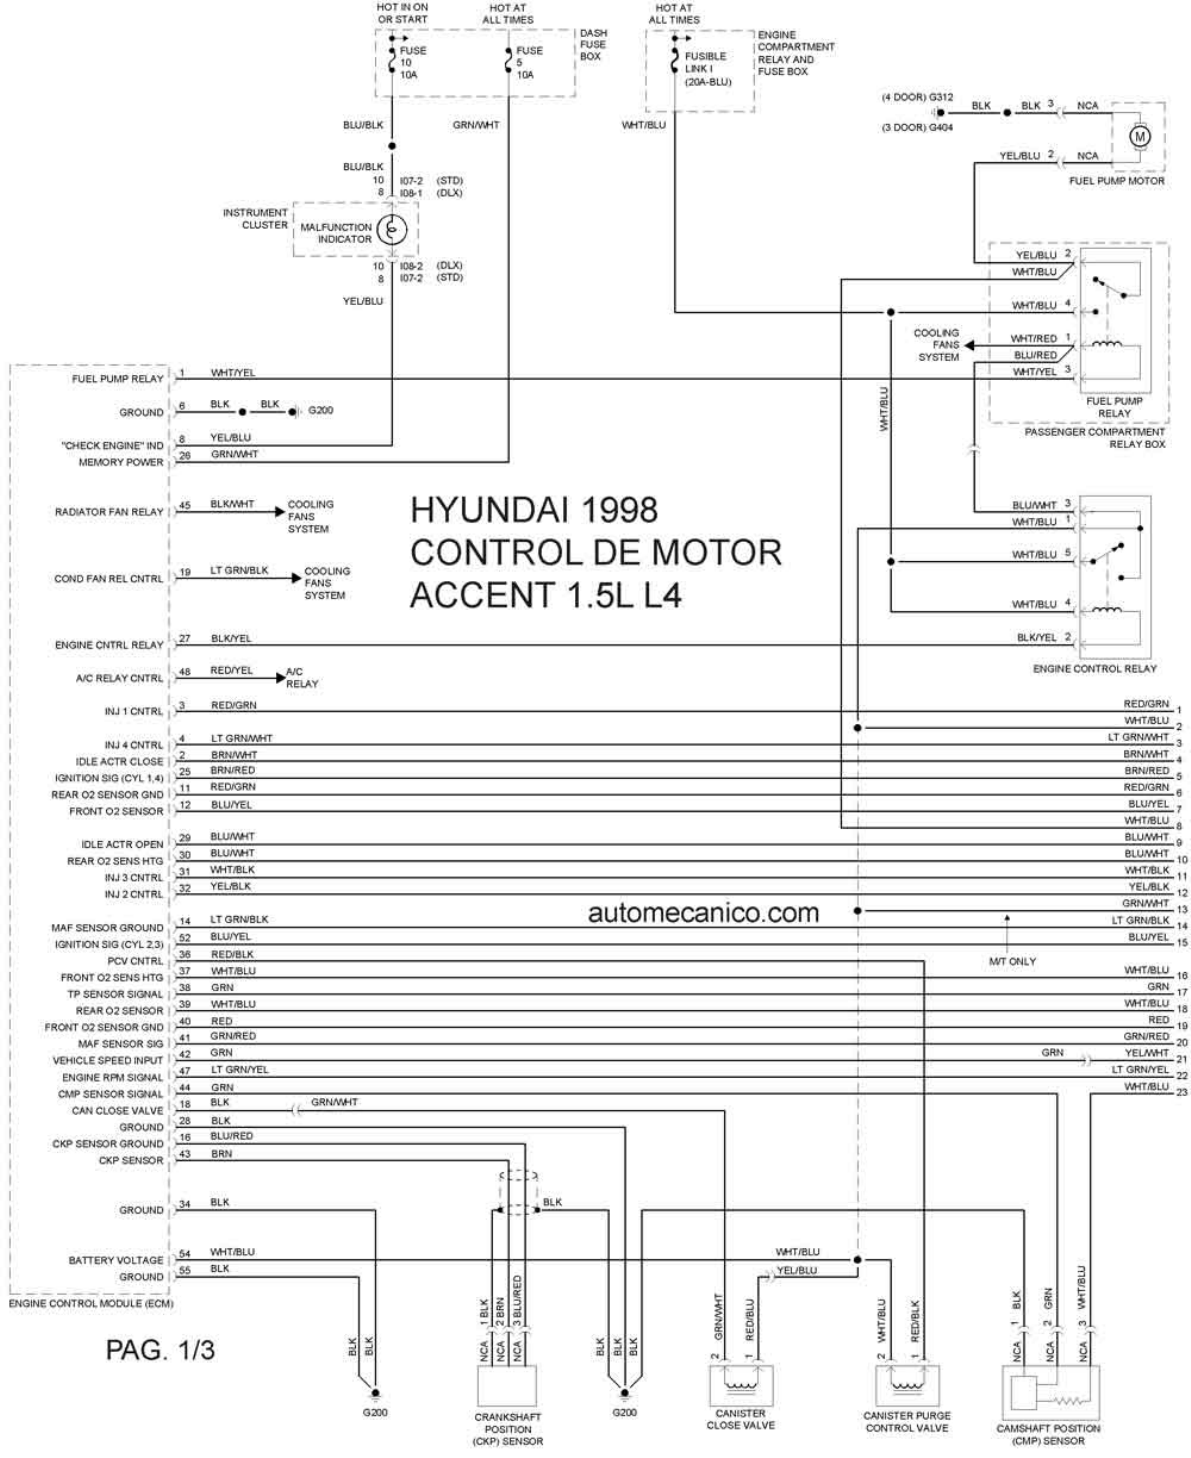 hight resolution of 2004 mercedes c240 fuse diagram wiring libraryfuse diagram 2007 accent simple wiring diagram mercedes fuse diagram